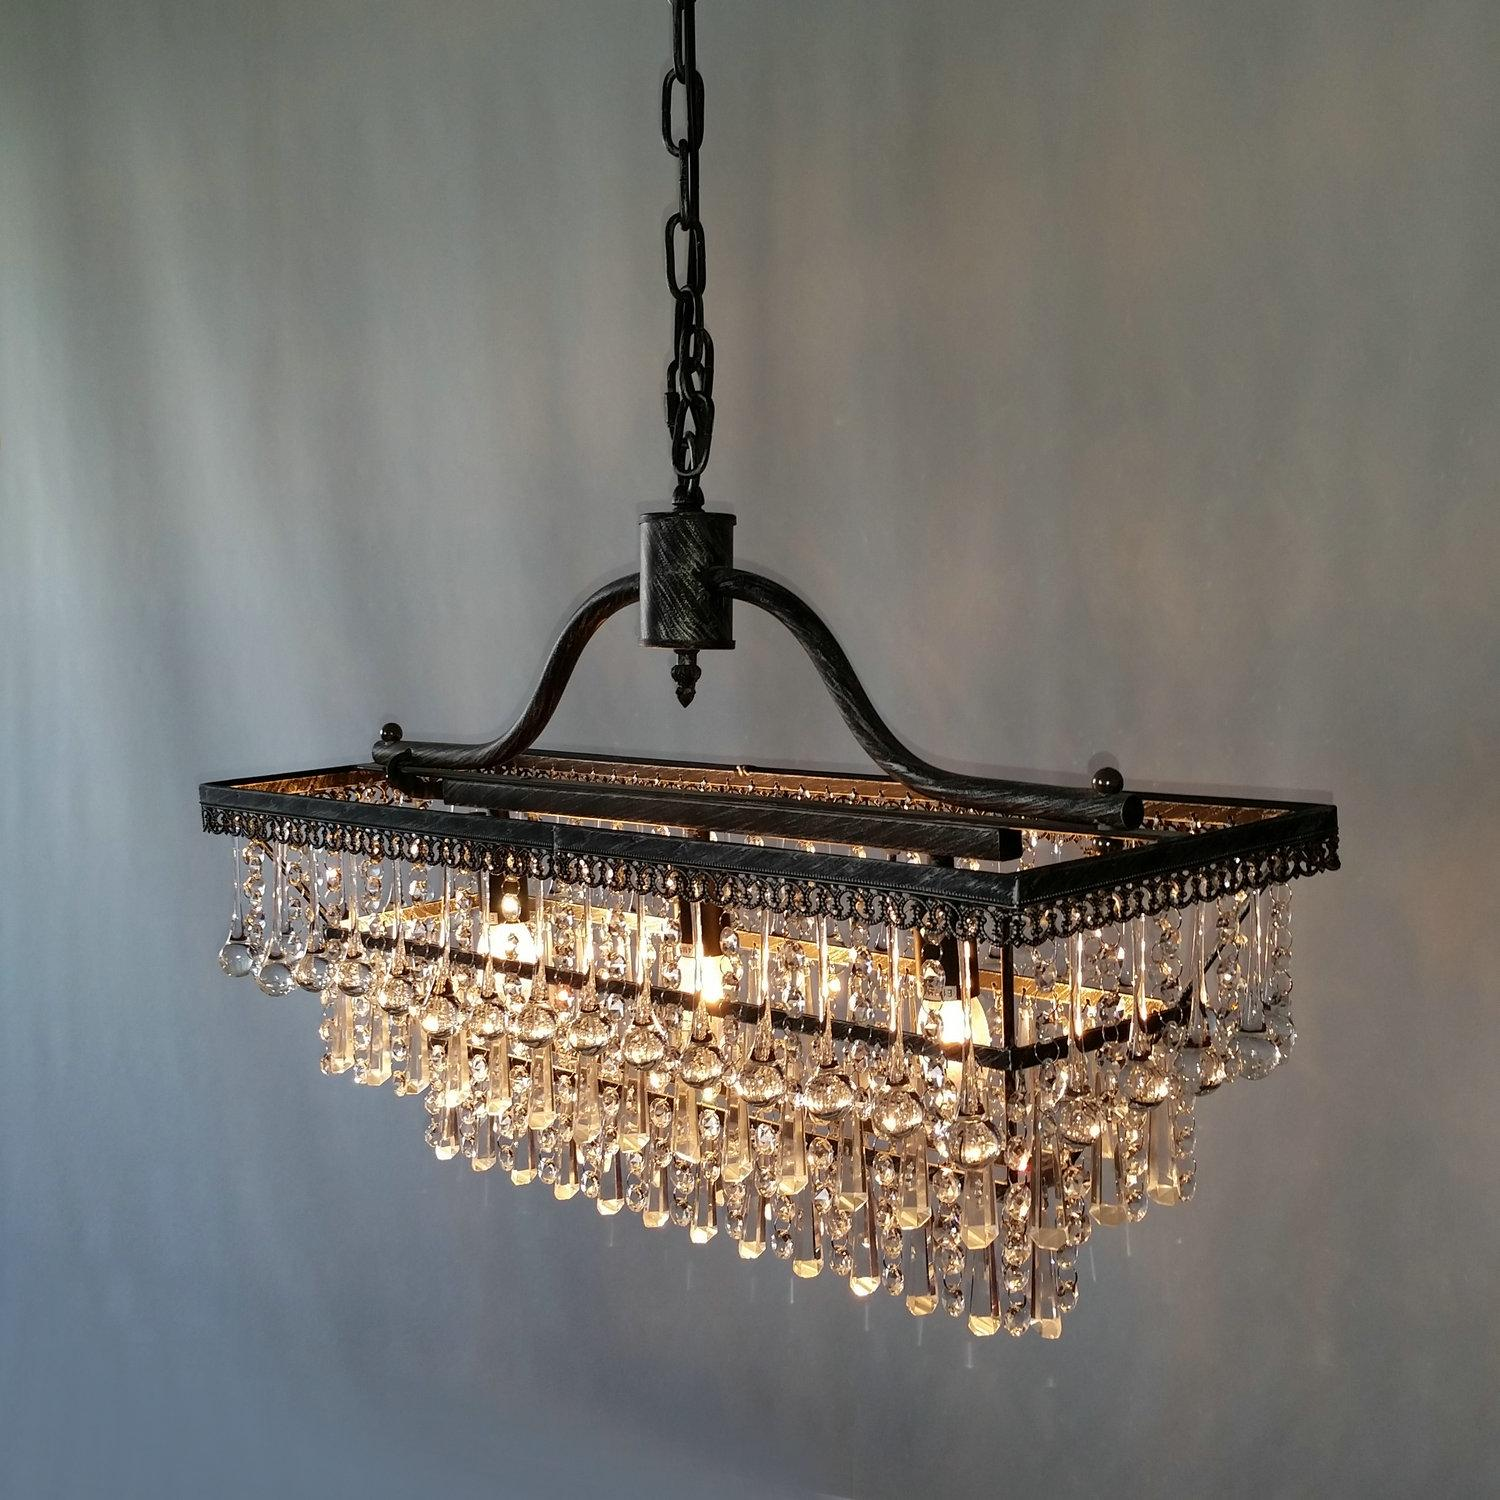 crystal decoration large modern chandelier metal fixture pendant